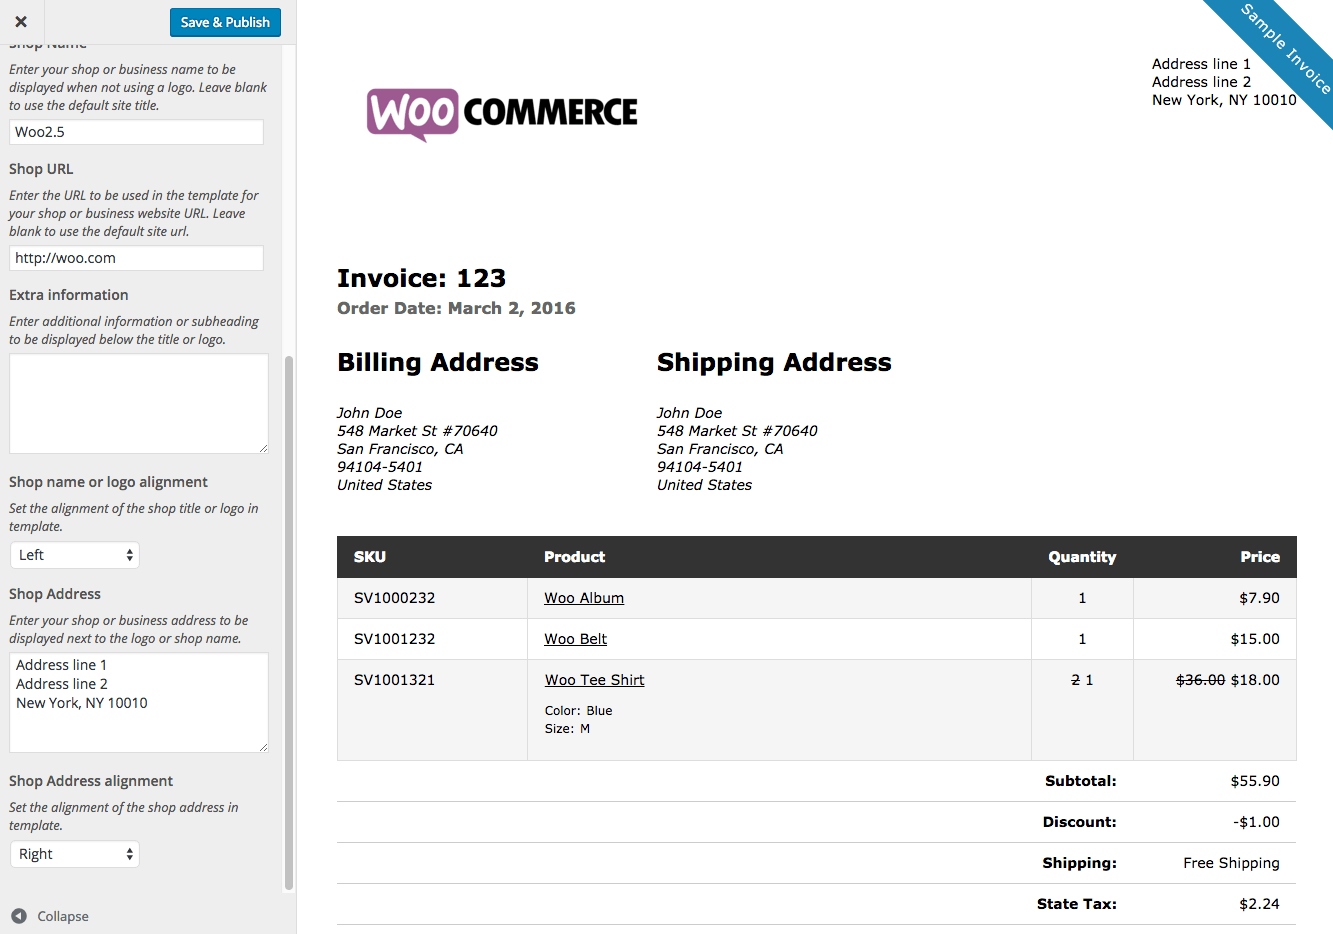 Occupyhistoryus  Scenic Woocommerce Print Invoices Amp Packing Lists  Woocommerce Docs With Glamorous Woocommerce Print Invoices  Packing Lists Customizer With Beautiful Invoice Number Format Also How To Make A Invoice On Word In Addition Vehicle Invoice Template And Credit Invoices As Well As Invoice Fedex Additionally  Ford Escape Invoice Price From Docswoocommercecom With Occupyhistoryus  Glamorous Woocommerce Print Invoices Amp Packing Lists  Woocommerce Docs With Beautiful Woocommerce Print Invoices  Packing Lists Customizer And Scenic Invoice Number Format Also How To Make A Invoice On Word In Addition Vehicle Invoice Template From Docswoocommercecom